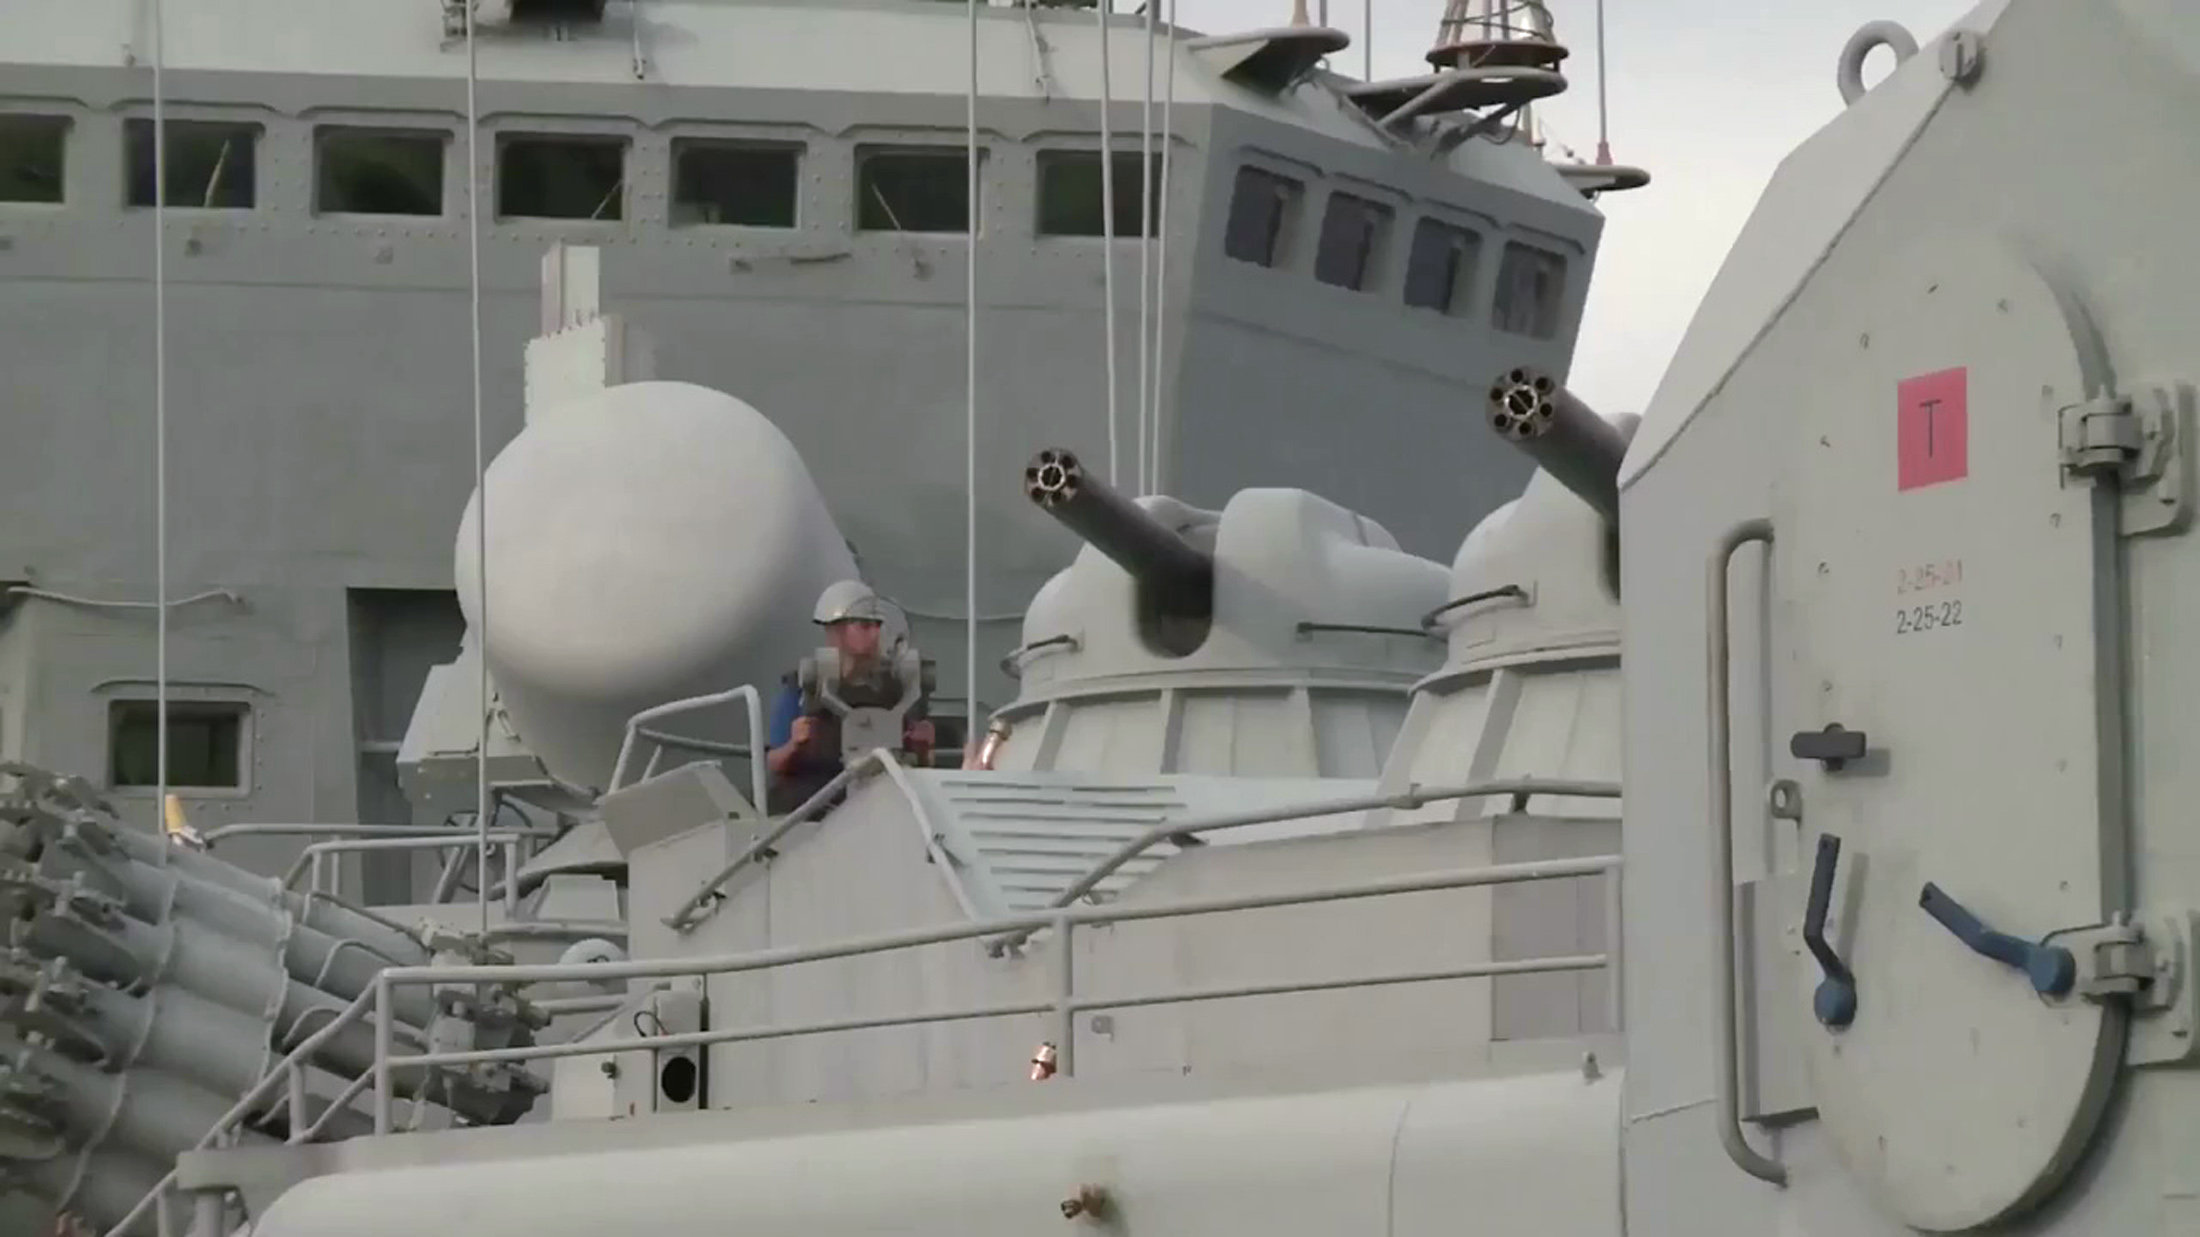 AK-630s aboard the guided missile cruiser Moskva